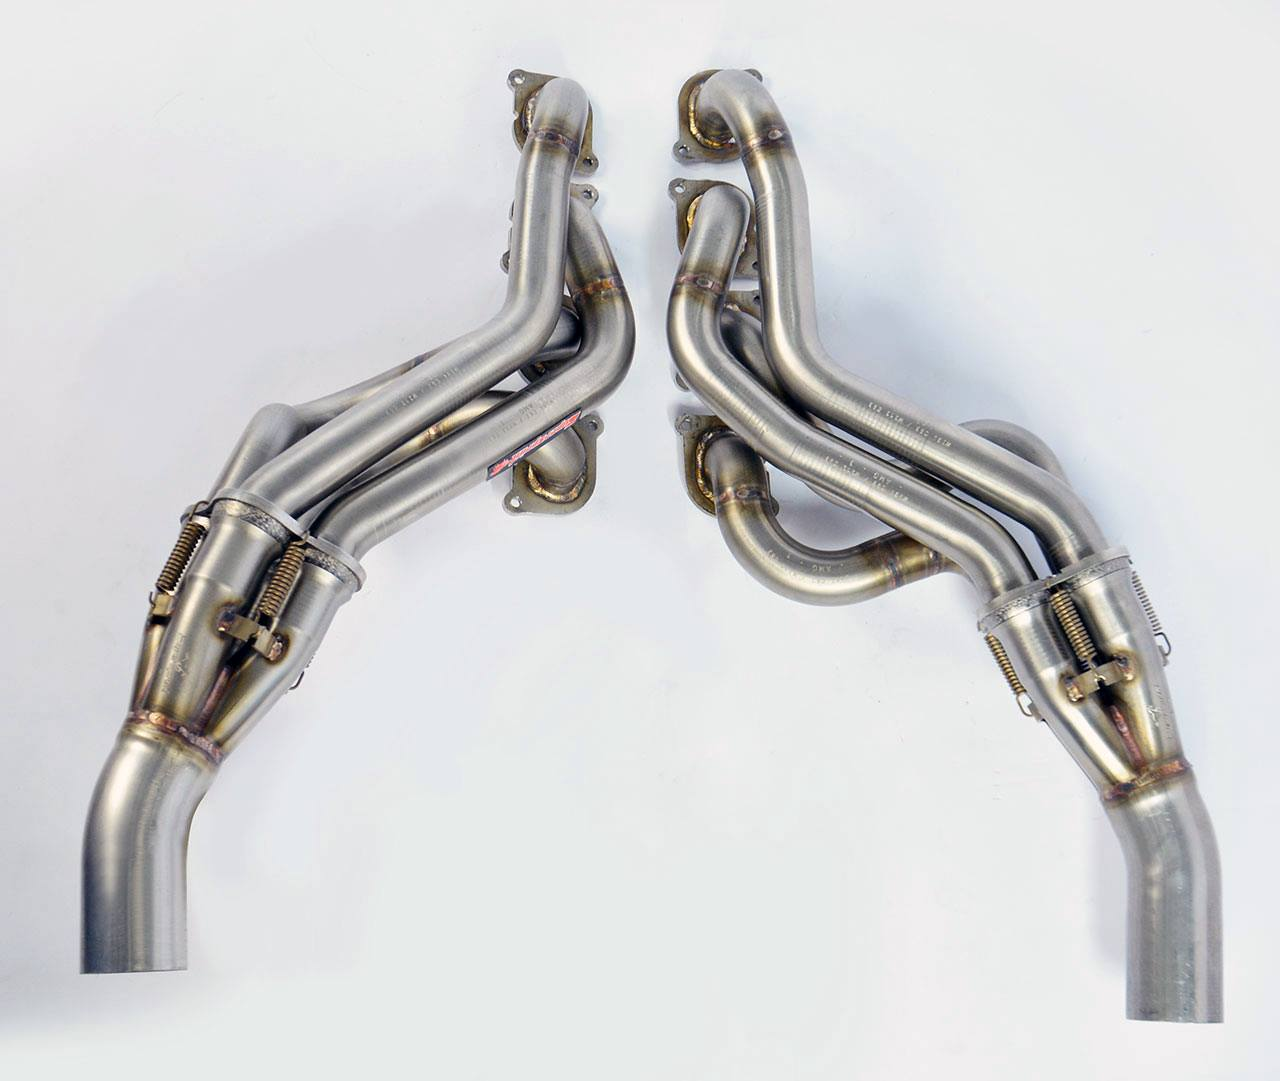 Supersprint Exhaust for MERCEDES W212 E 63 AMG (M156 6.2i V8 - 525 Hp) (Sedan + S.W.) '09 -> '13